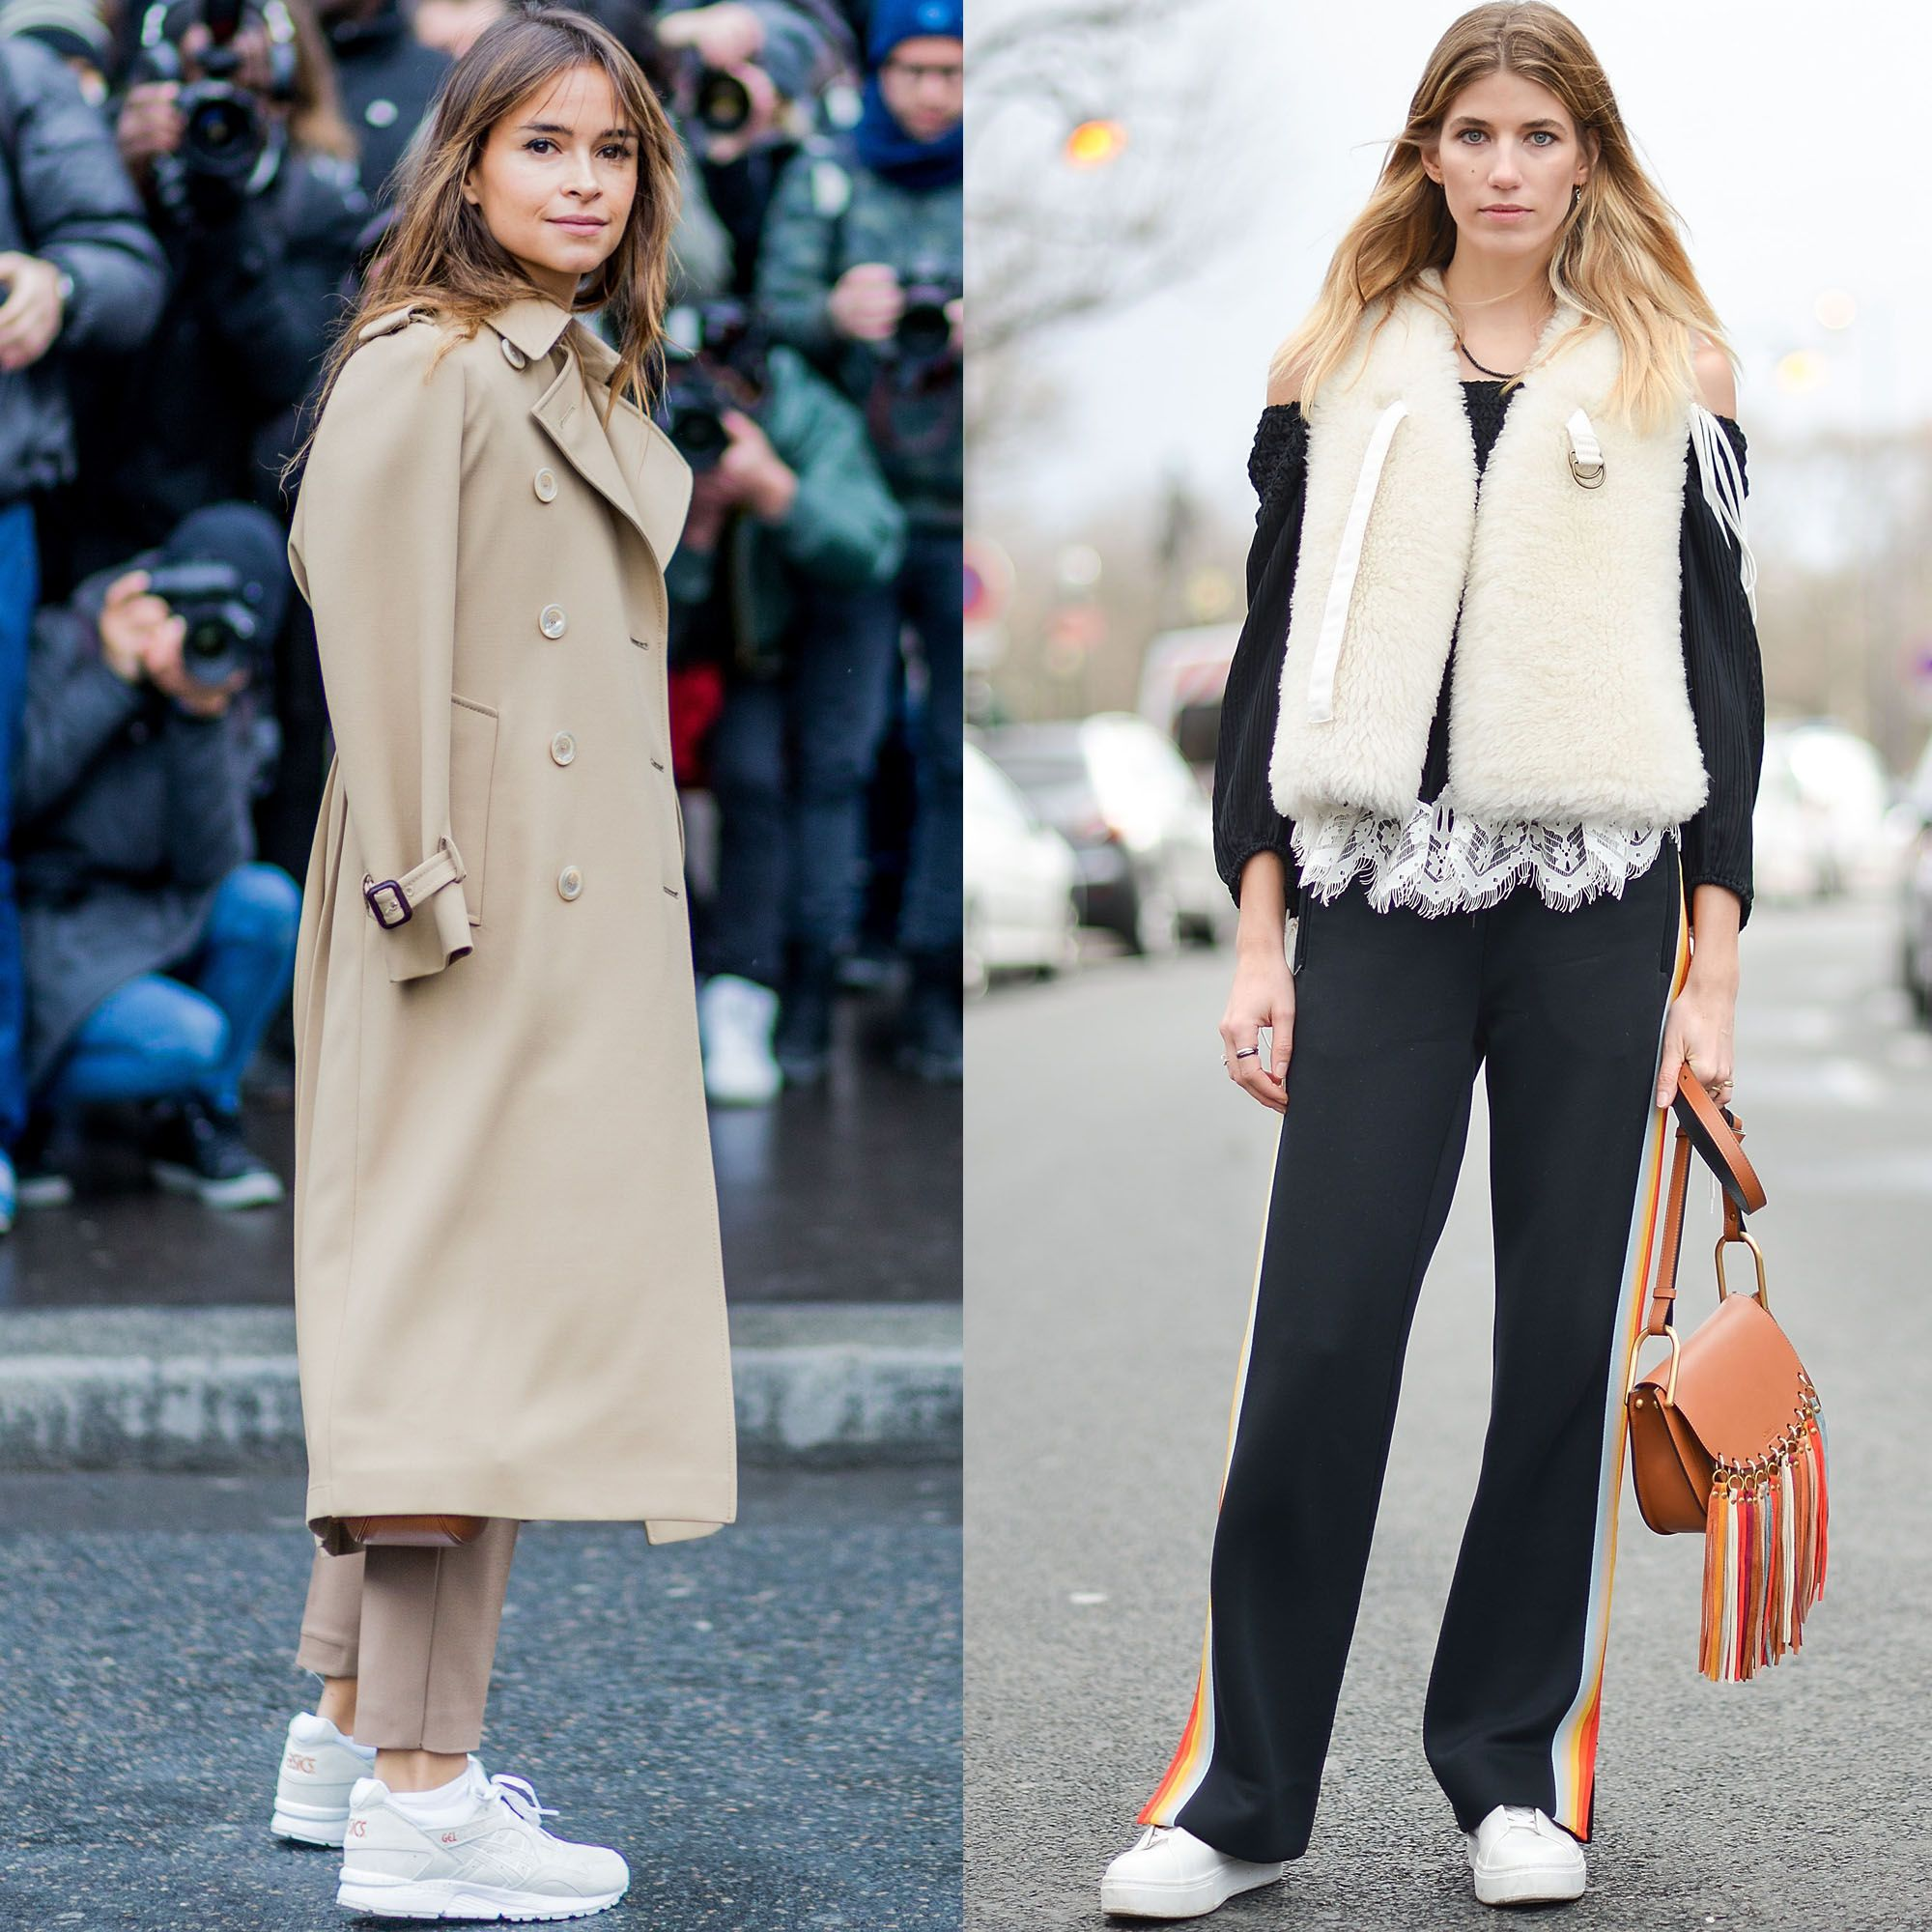 "<p>The comfortable-shoe reign continues, and the sneaker is king. Seen on the streets of Paris on Miroslava Duma and Veronika Heilbrunner<span class=""redactor-invisible-space"">; the front-row set wore their's with relaxed-fitting pants. </span></p>"